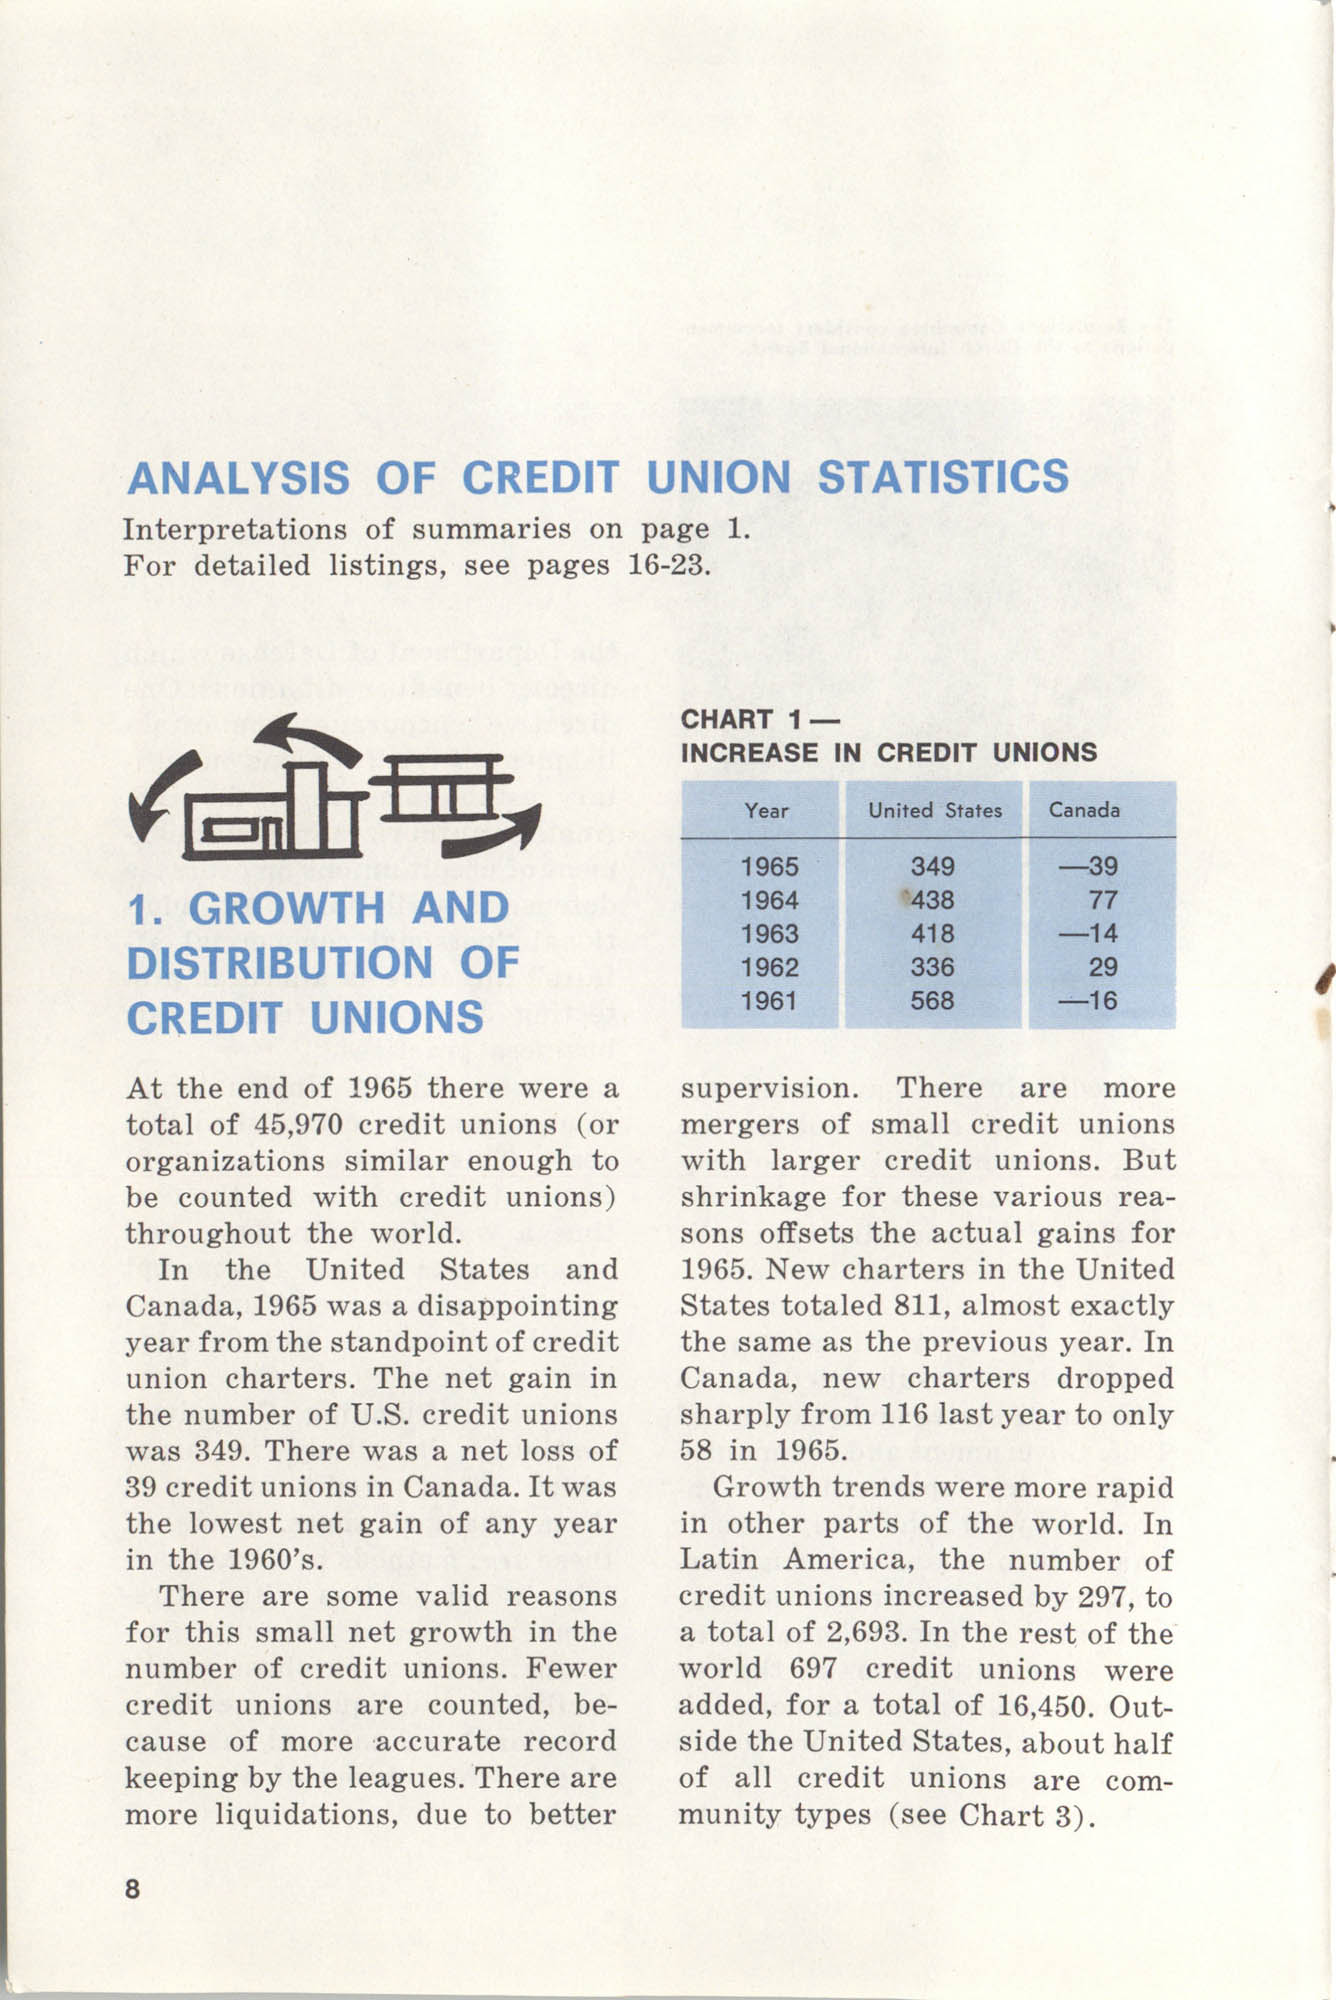 International Credit Union Yearbook, Page 8